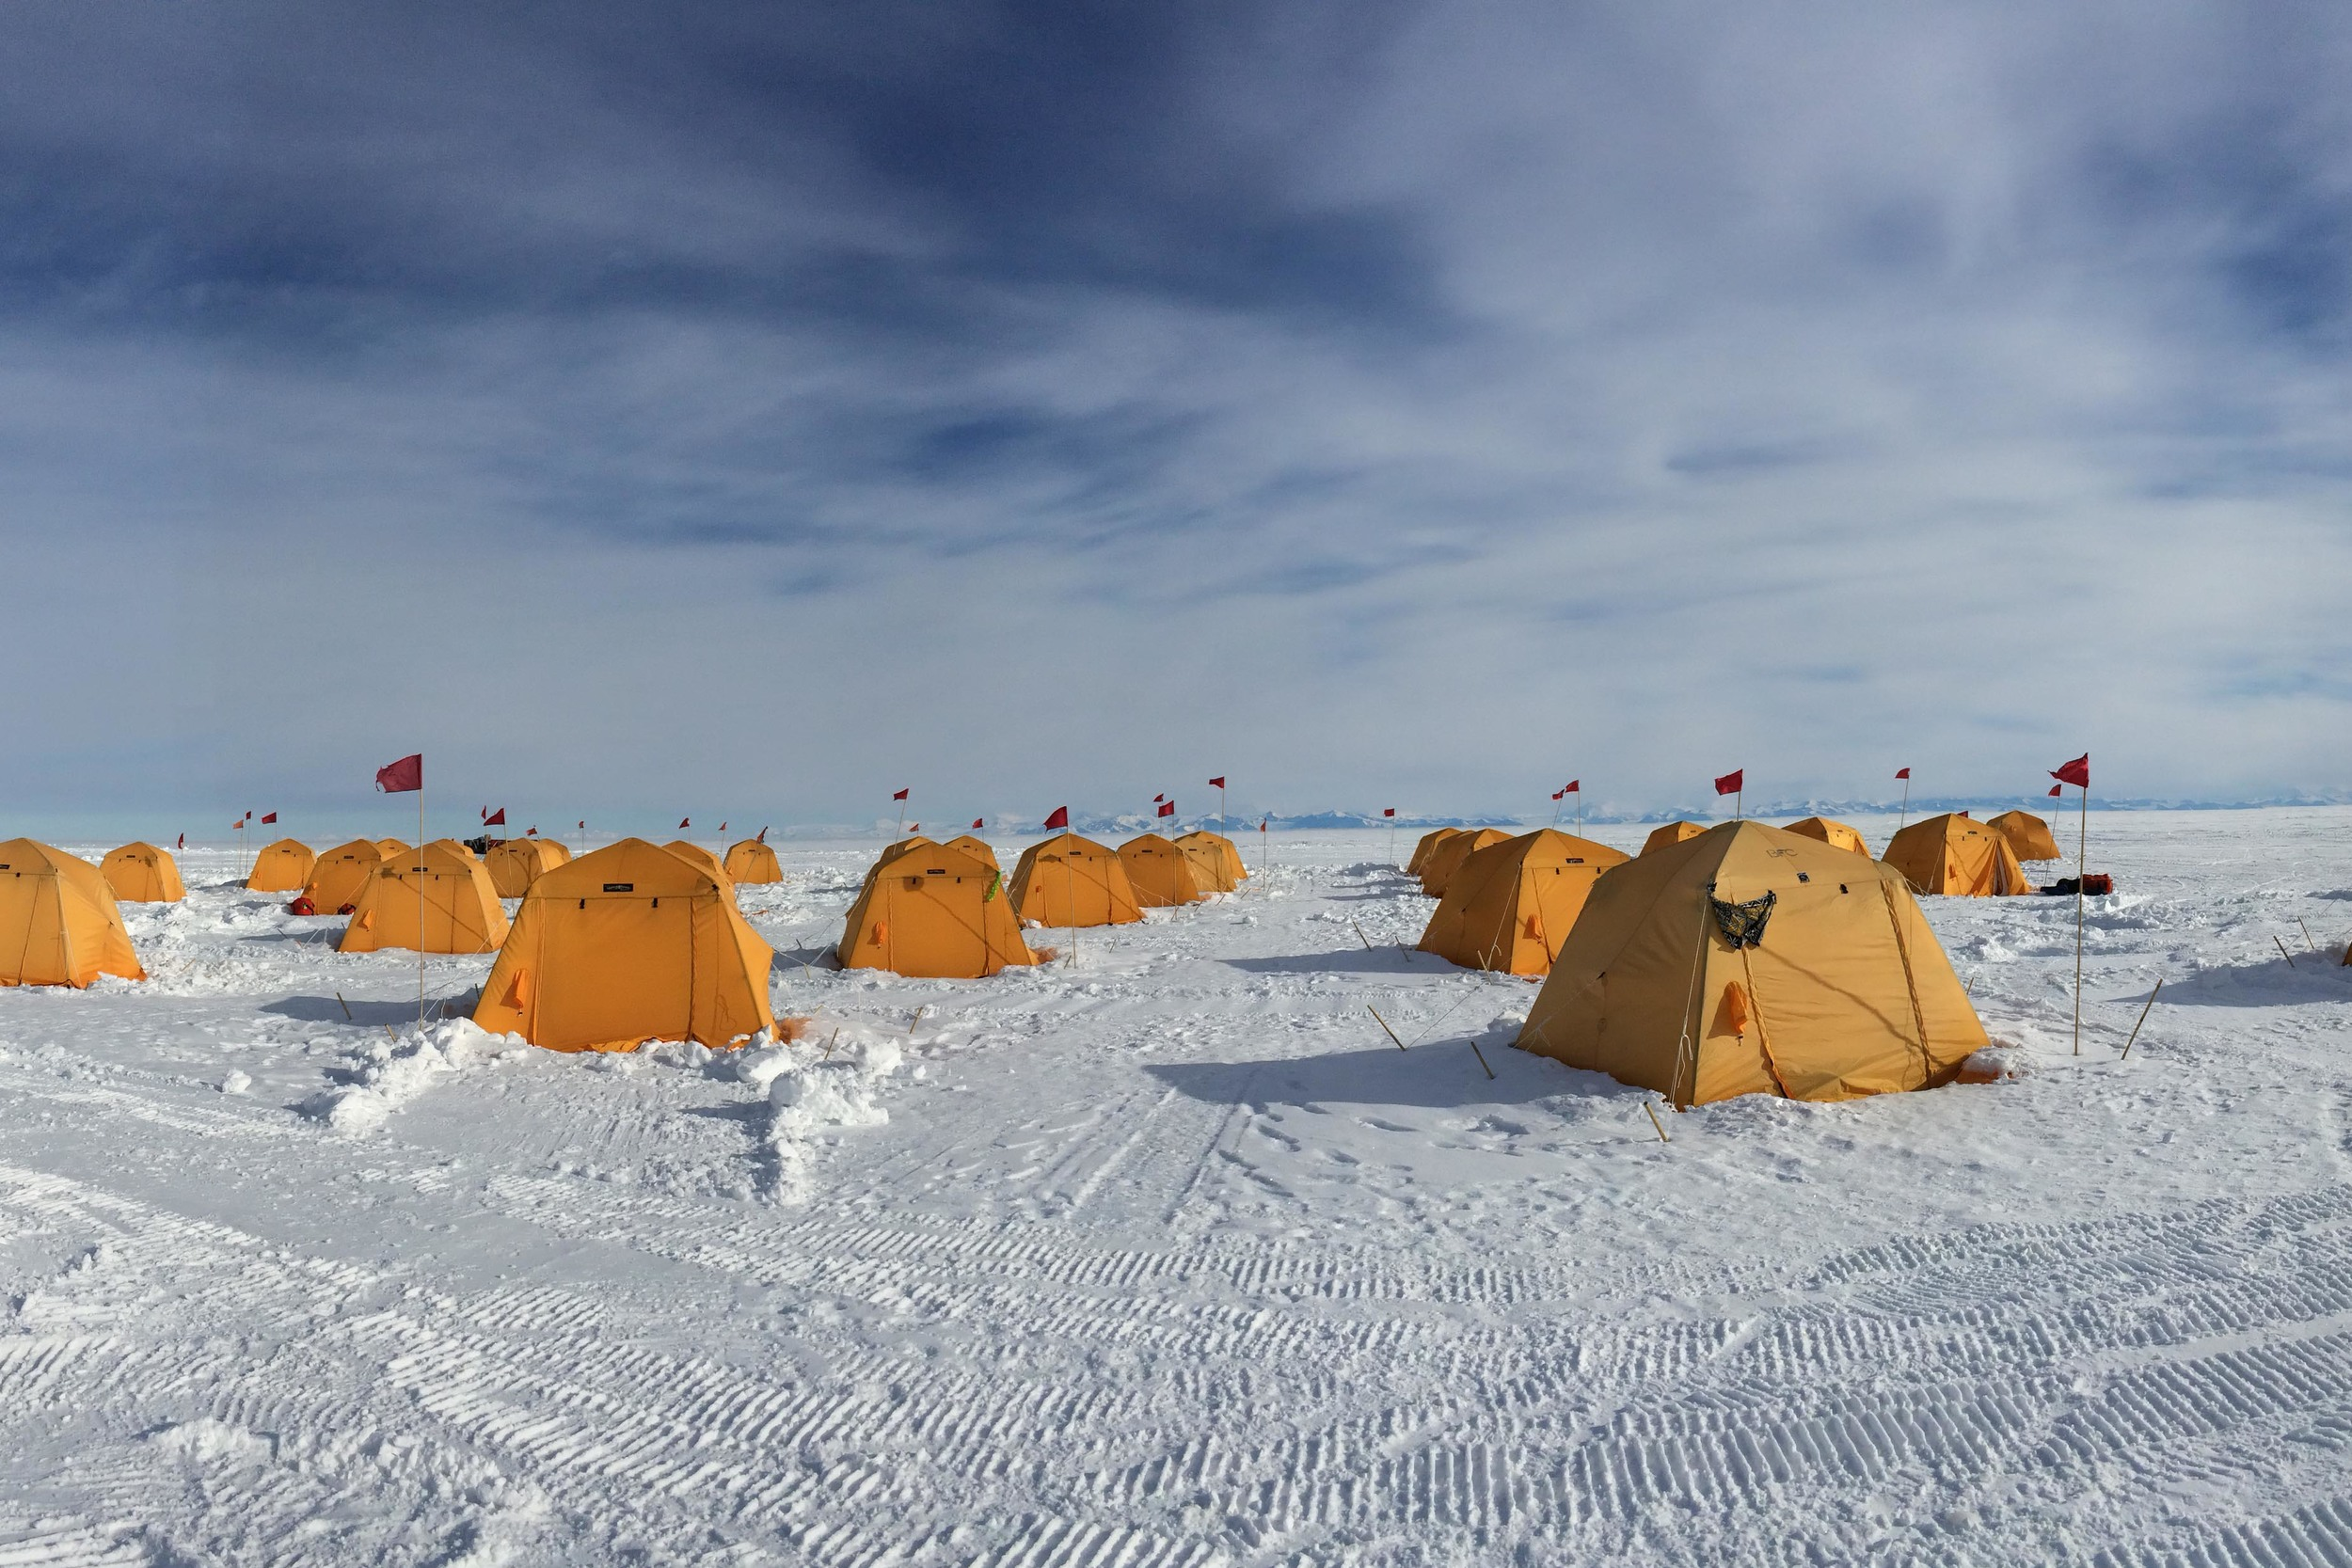 Sleeping tents at Subglacial Lake Whillans. PHOTO BY TRISTA VICK-MAJORS